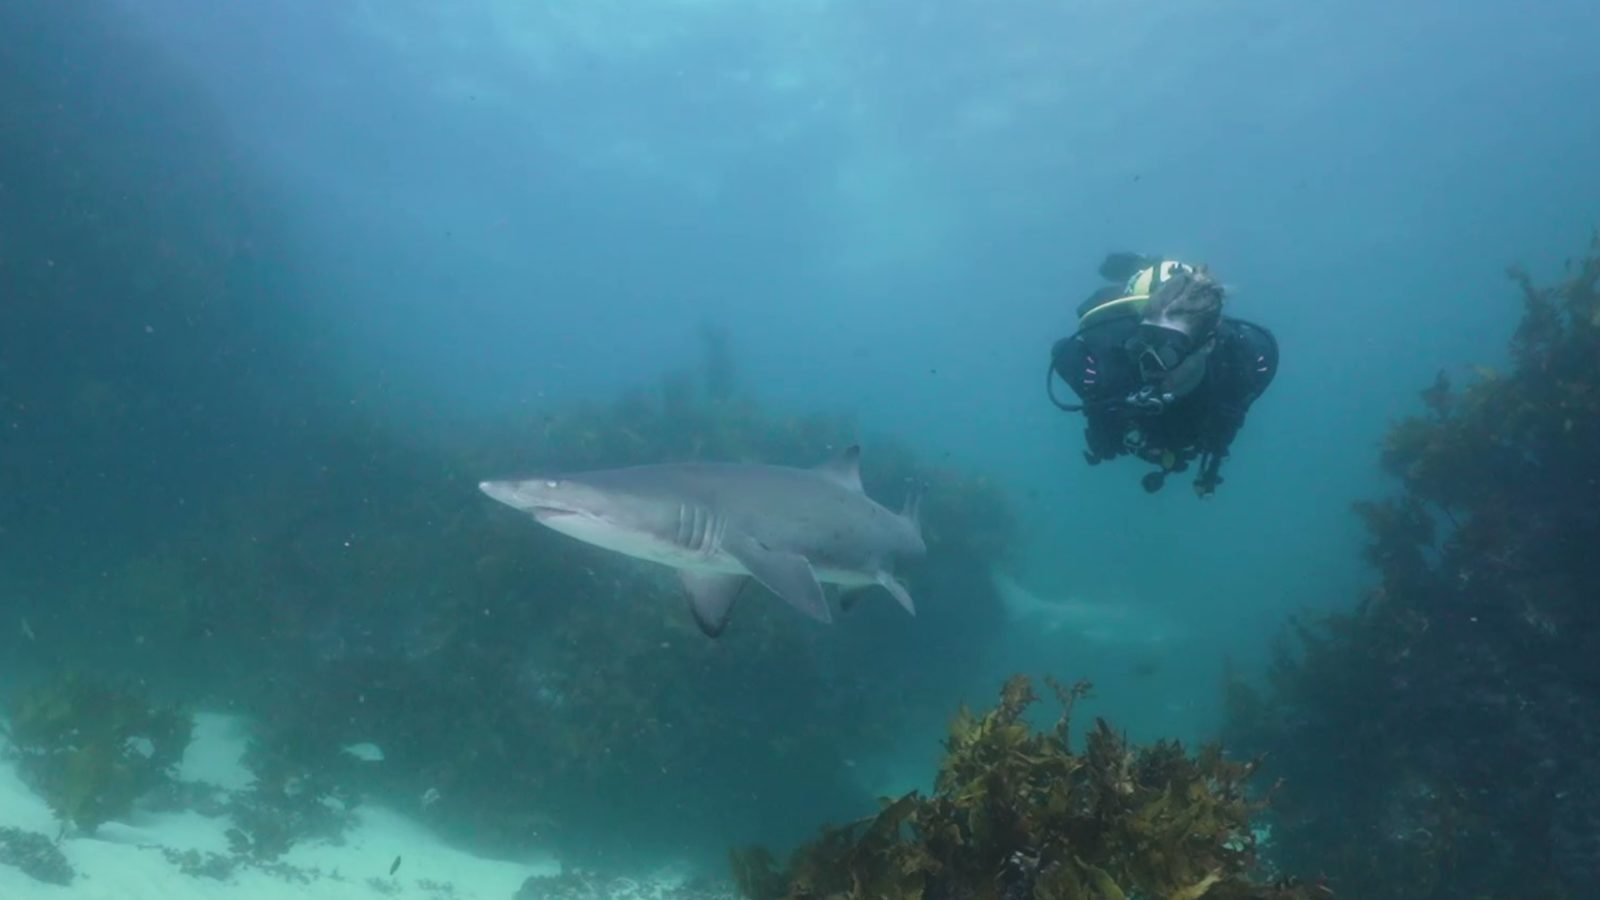 Aggregations of up to 40 Grey Nurse Sharks reside at The Pinnacle and Latitude Rock off Forster